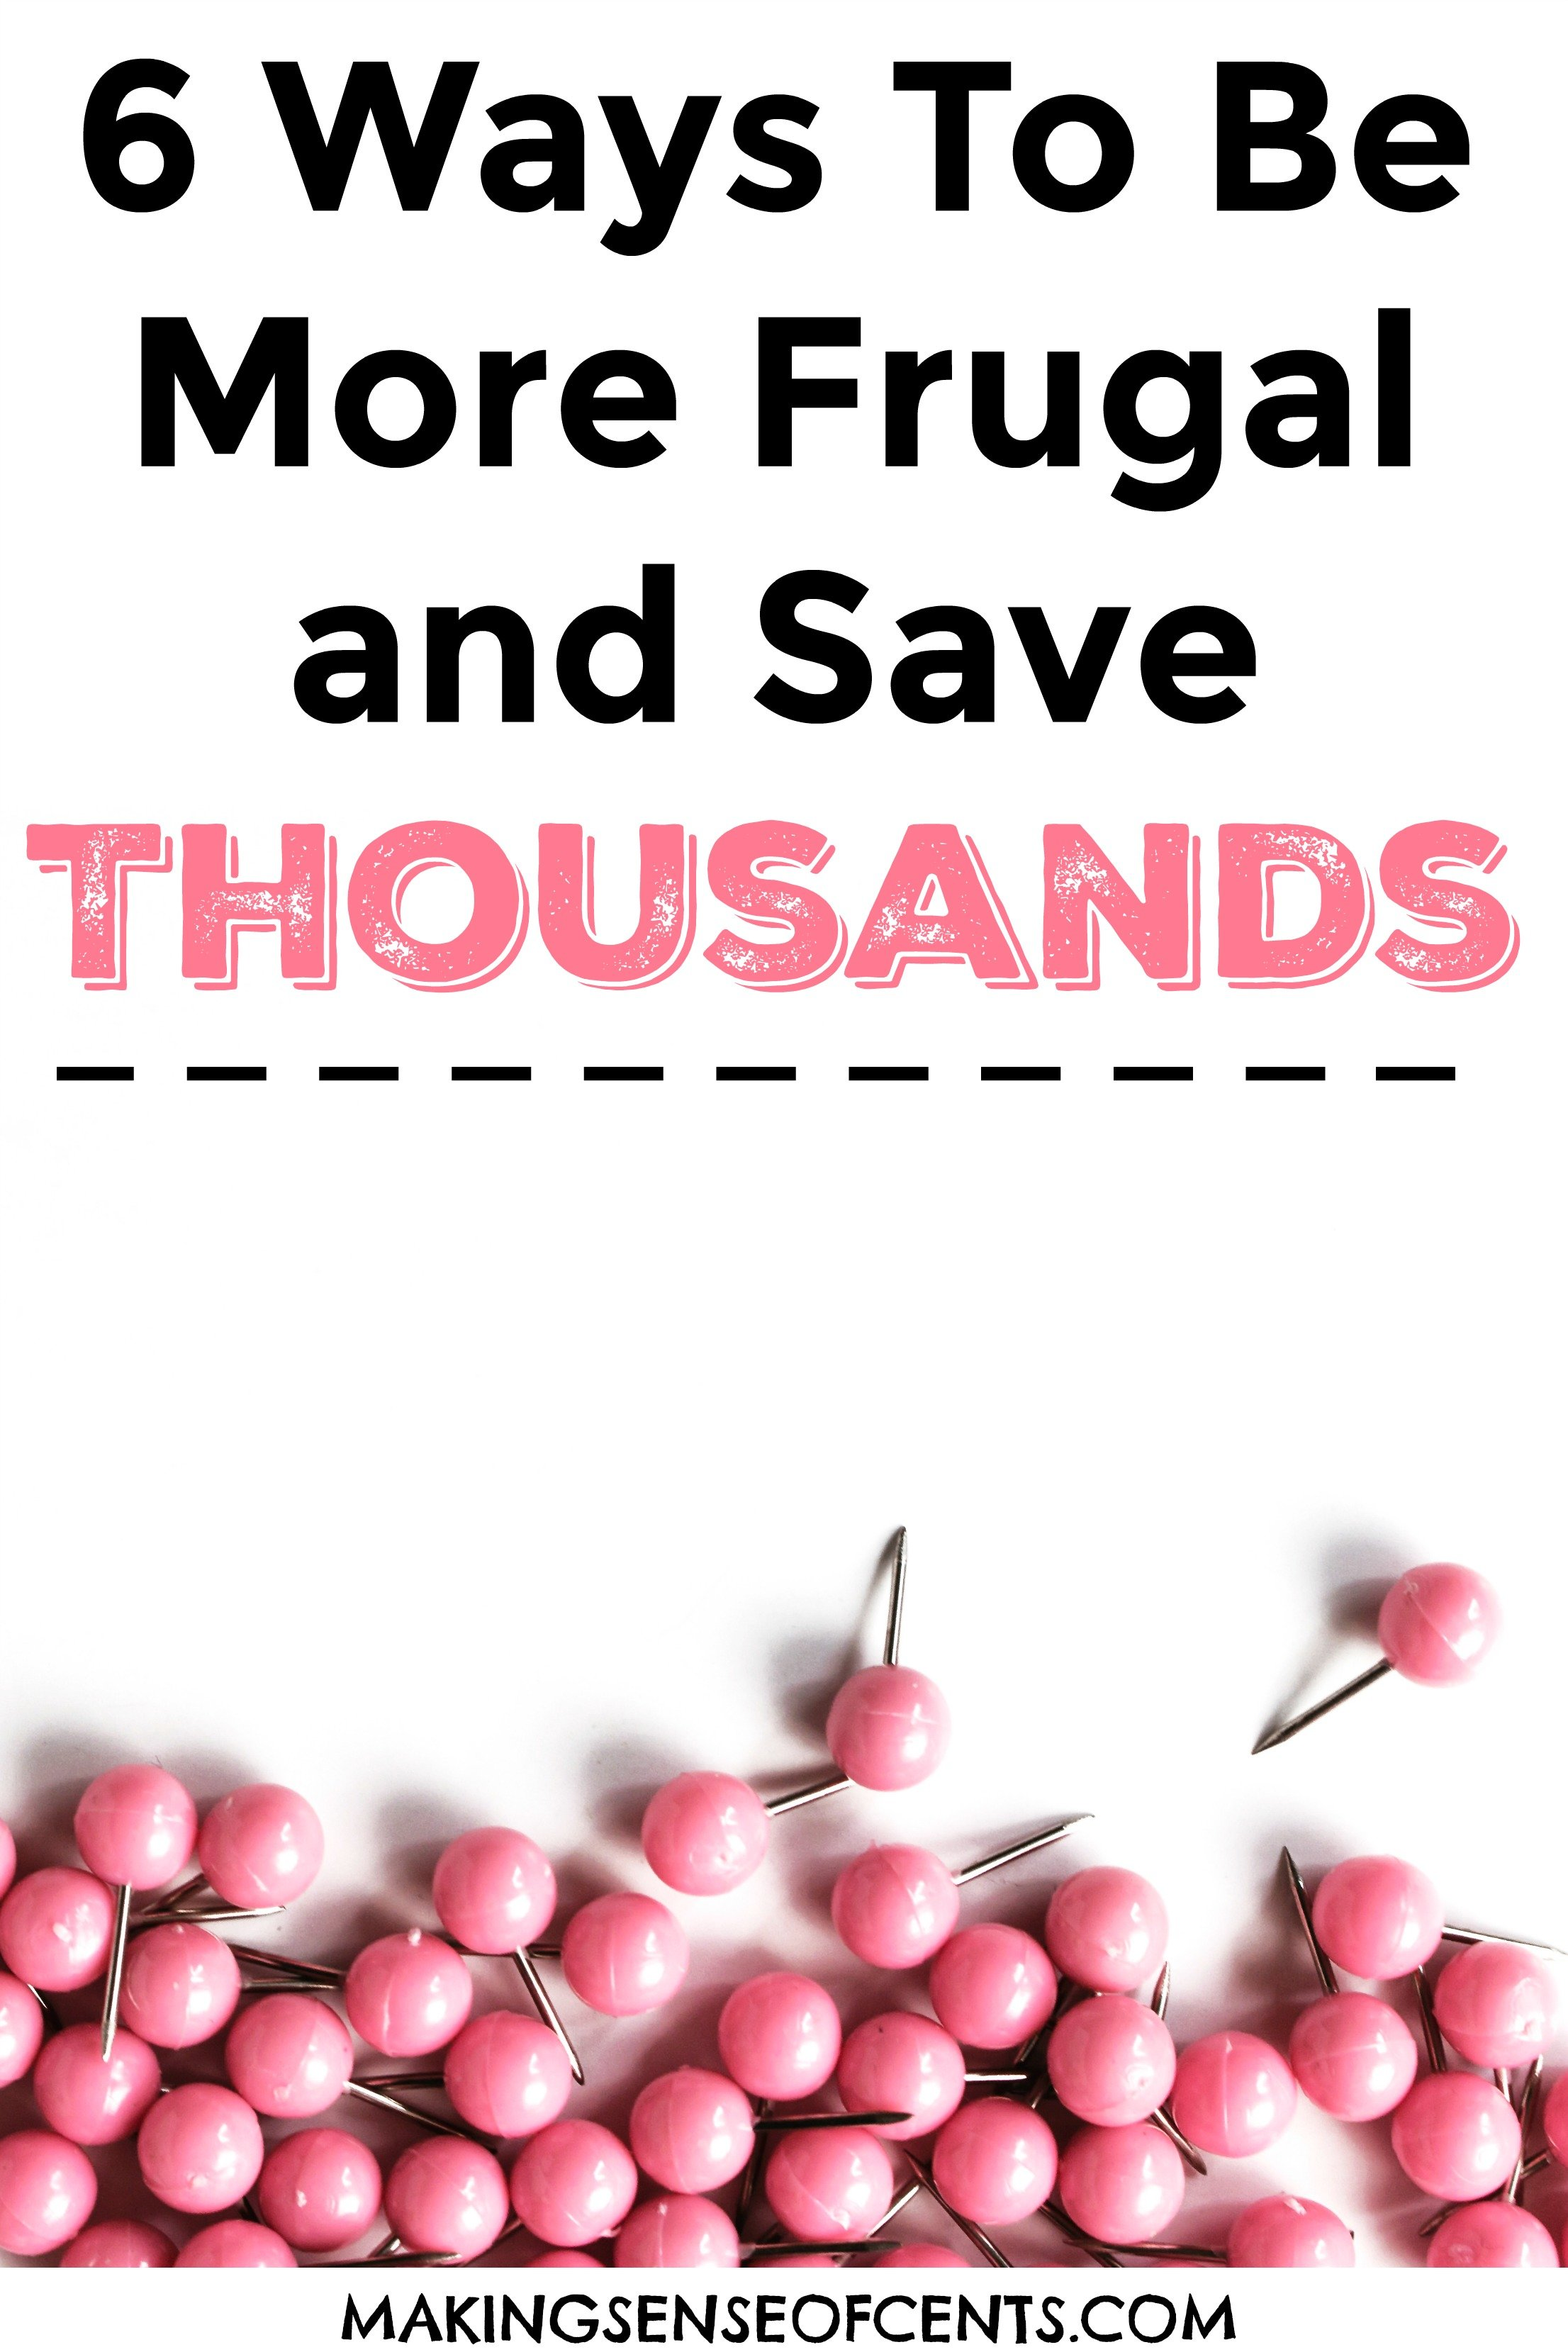 6 Ways To Be More Frugal and Save Thousands